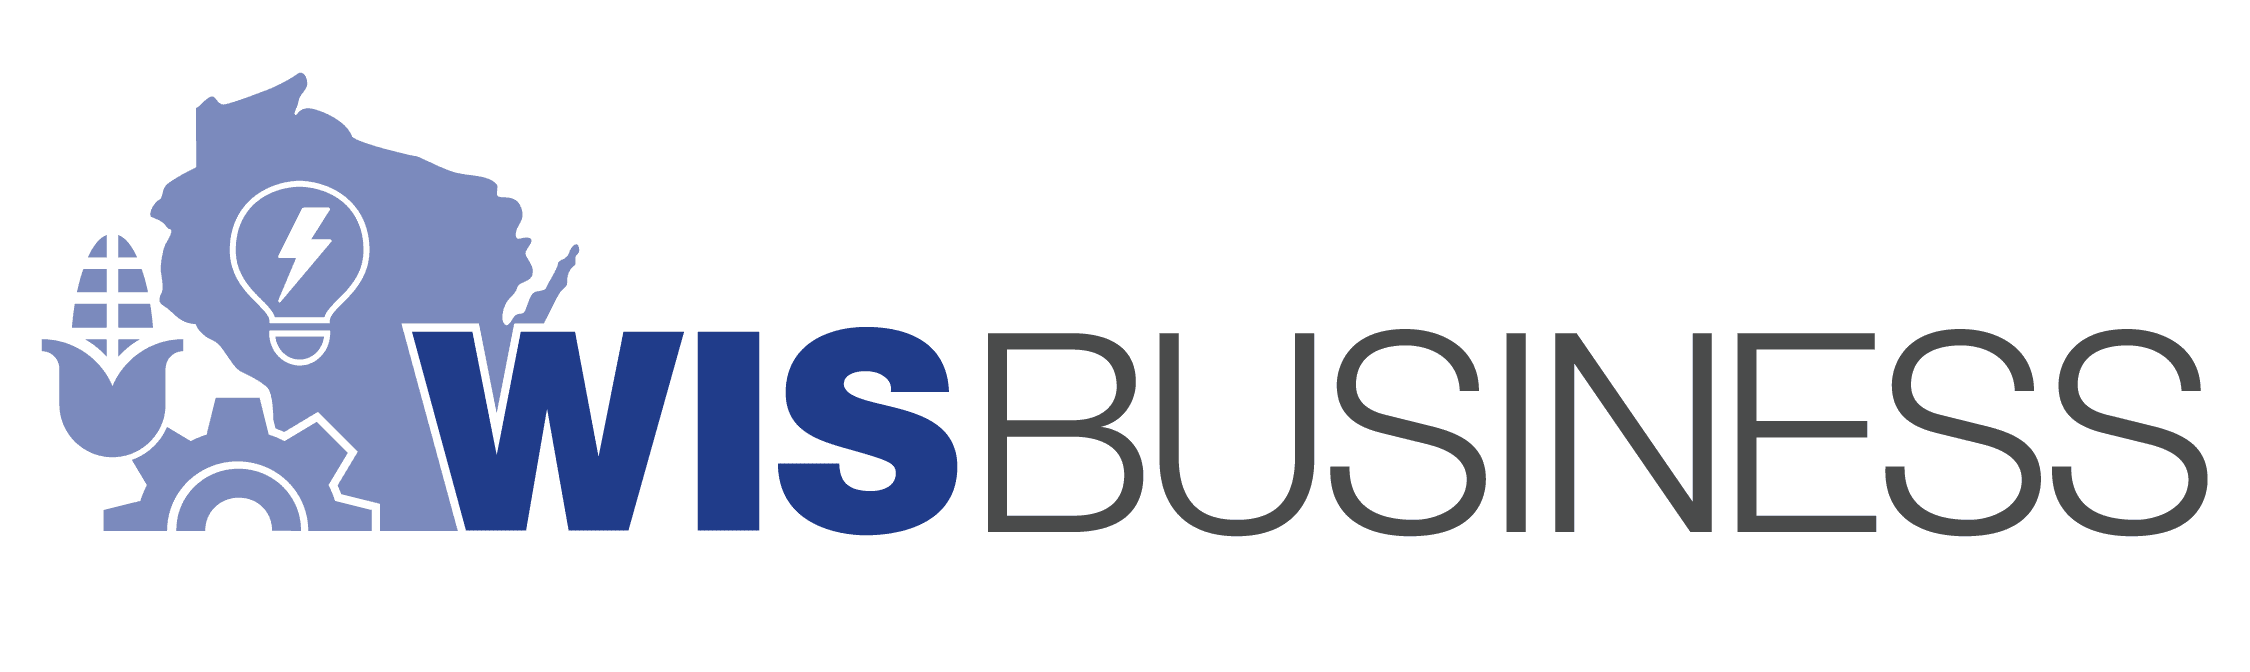 WisBusiness logo